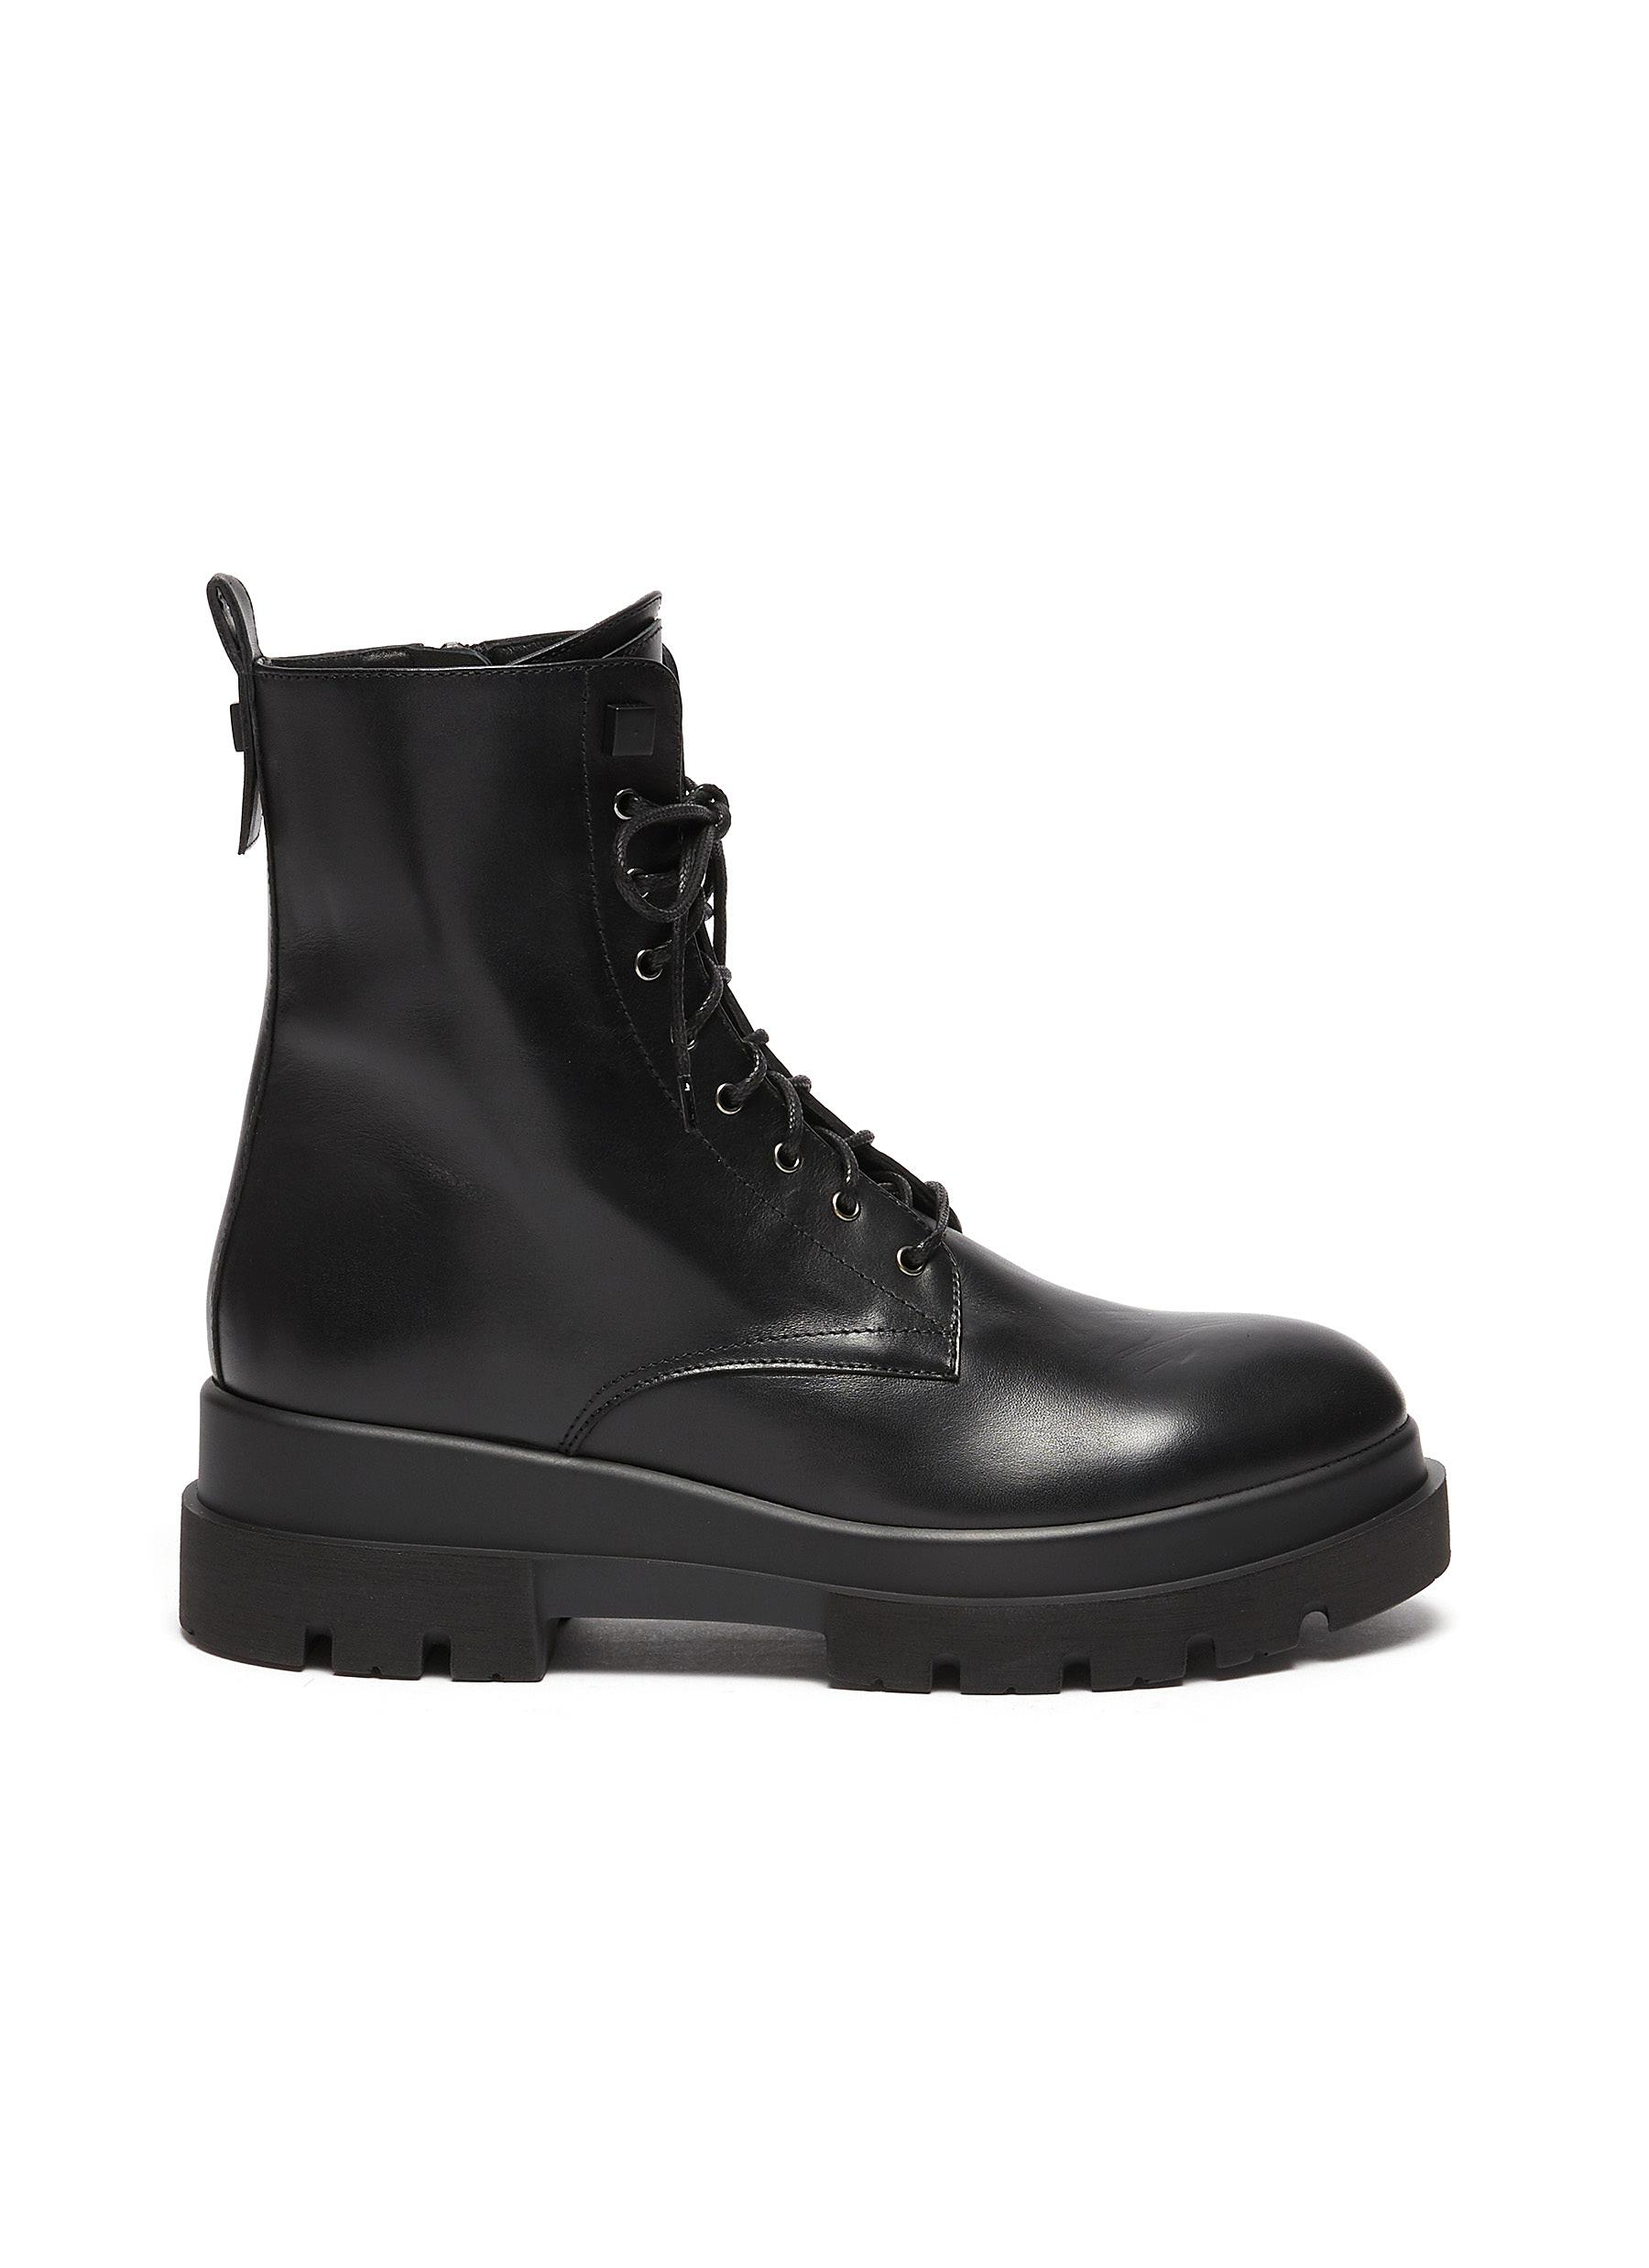 Brendan' Rubber Lug Sole Lace Up Leather Combat Boots